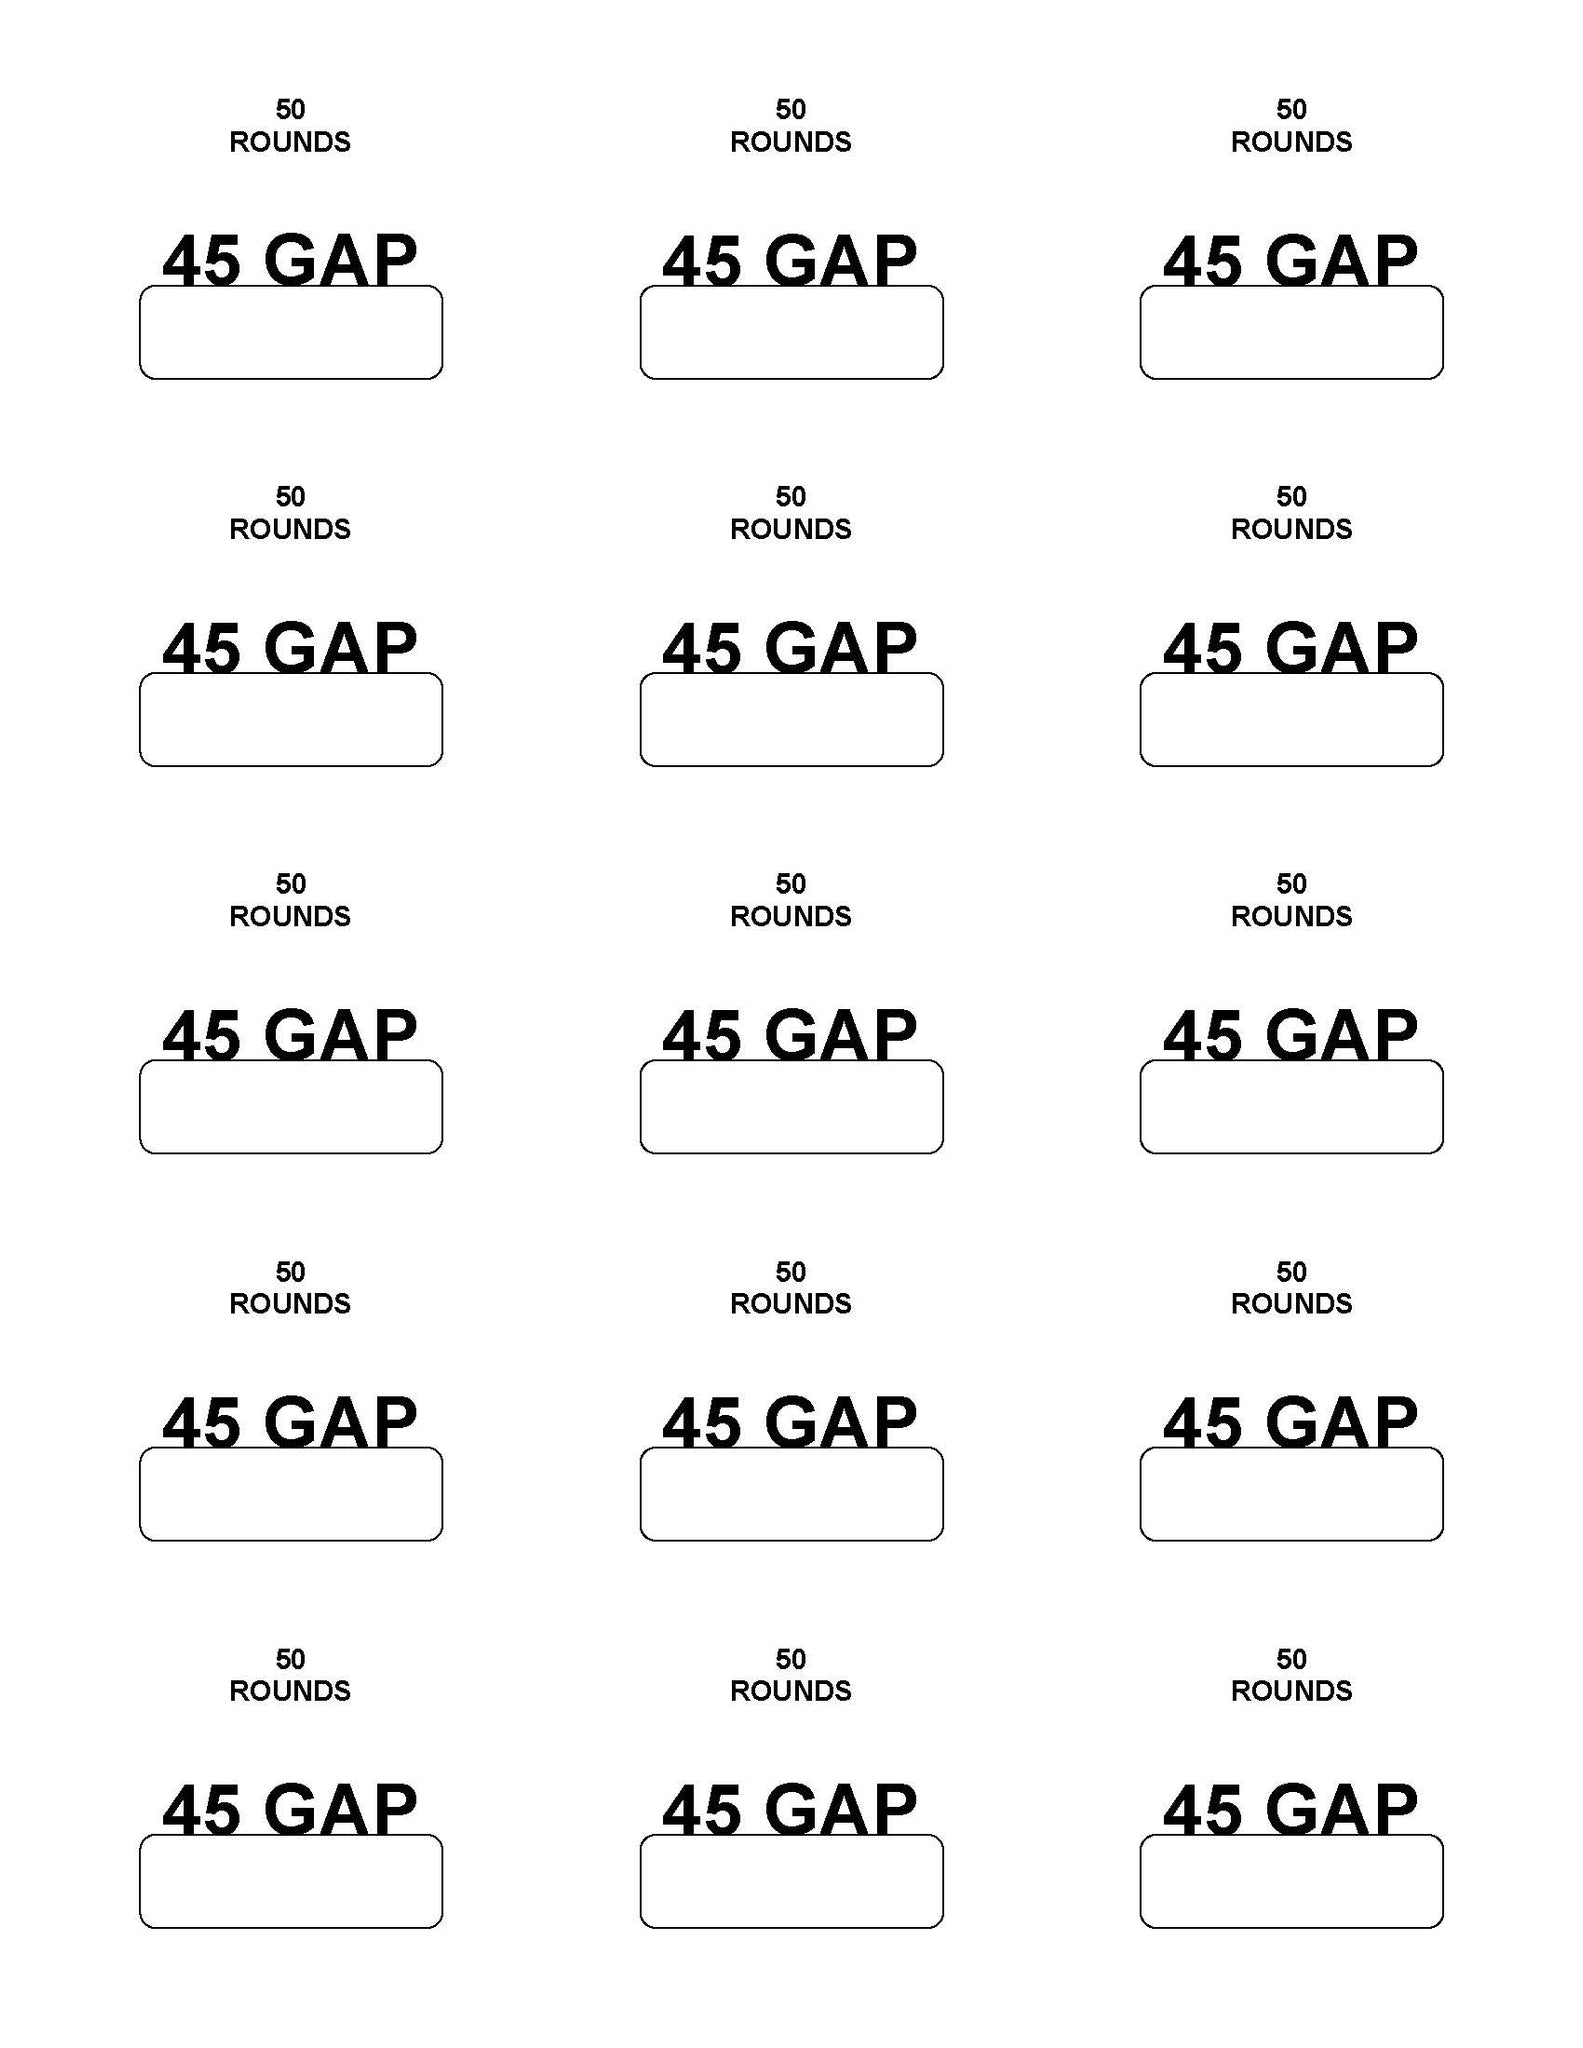 Labels: 45 GAP